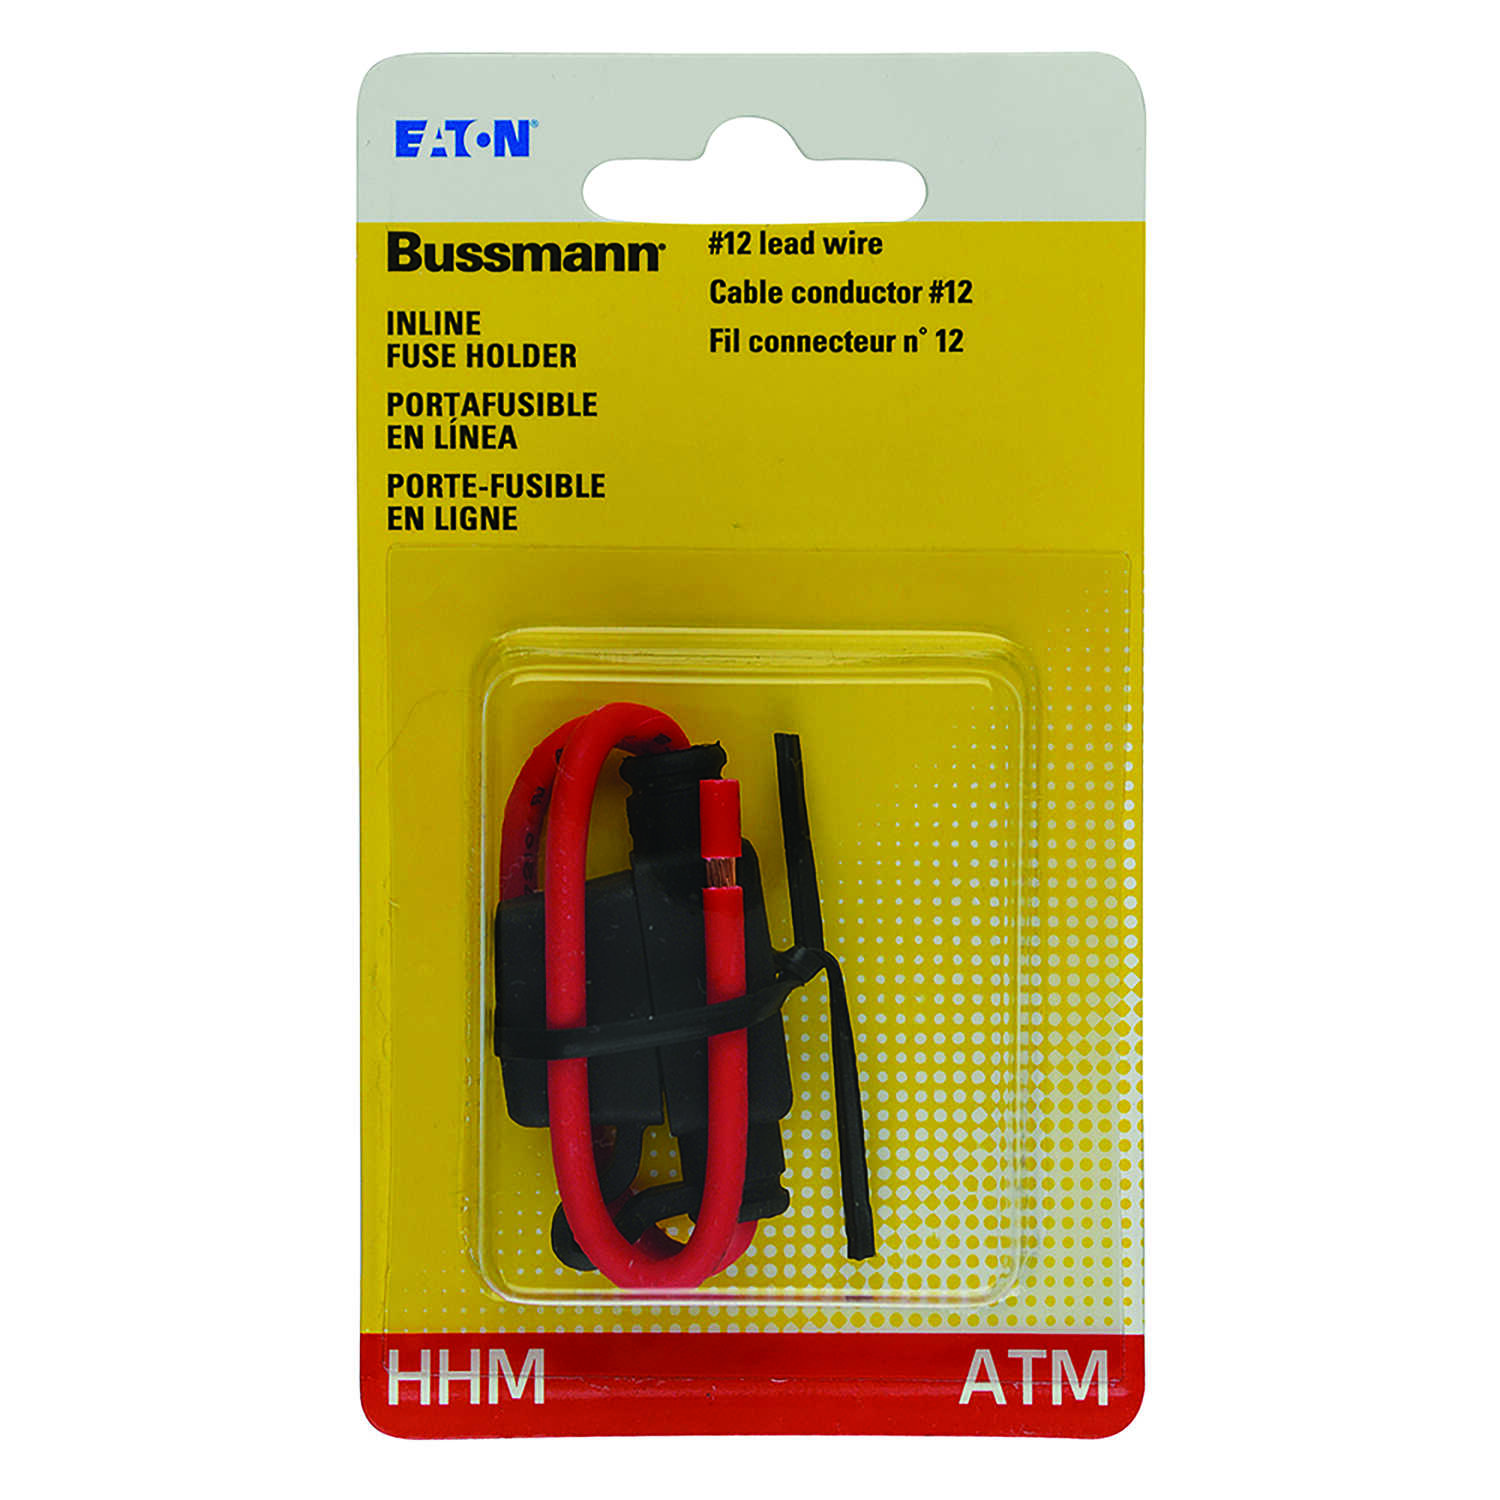 Bussmann 30 amps ATC In-Line Fuse Holder 1 pk - Ace Hardware